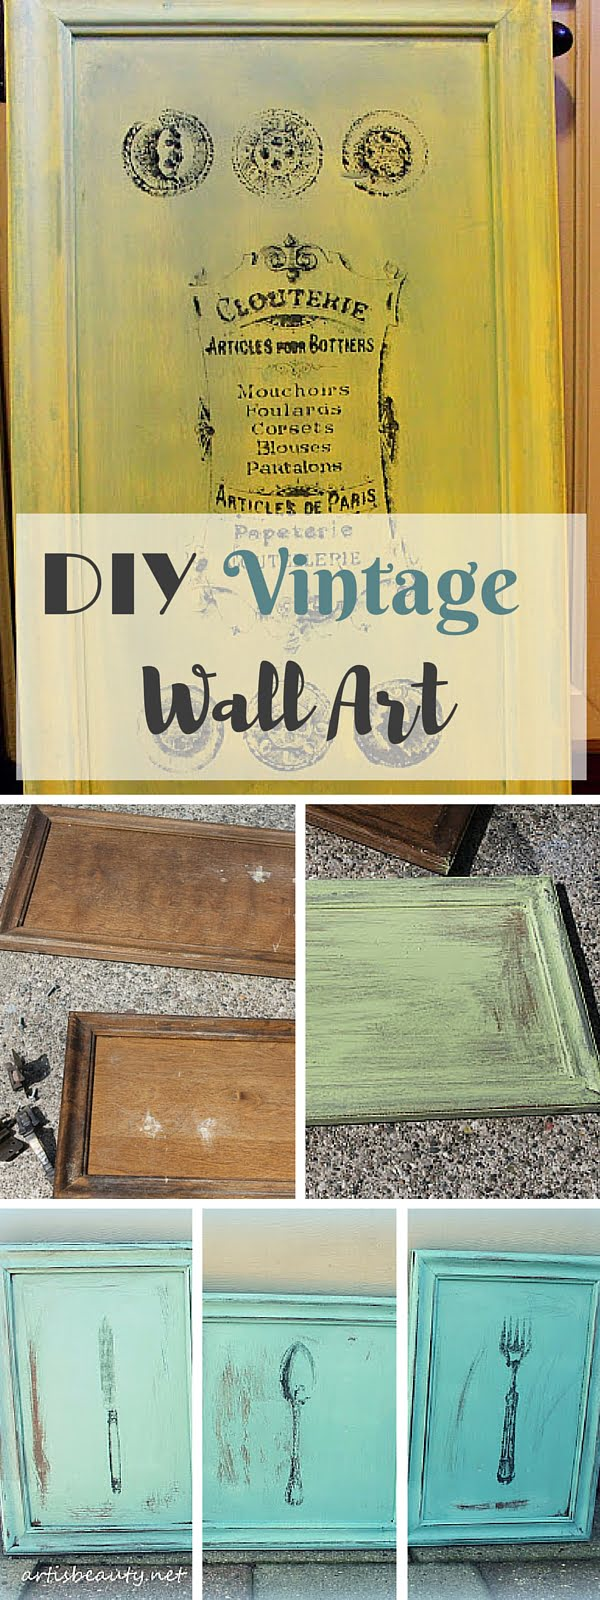 Check out the tutorial: #DIY Vintage Wall Art #crafts #homedecor